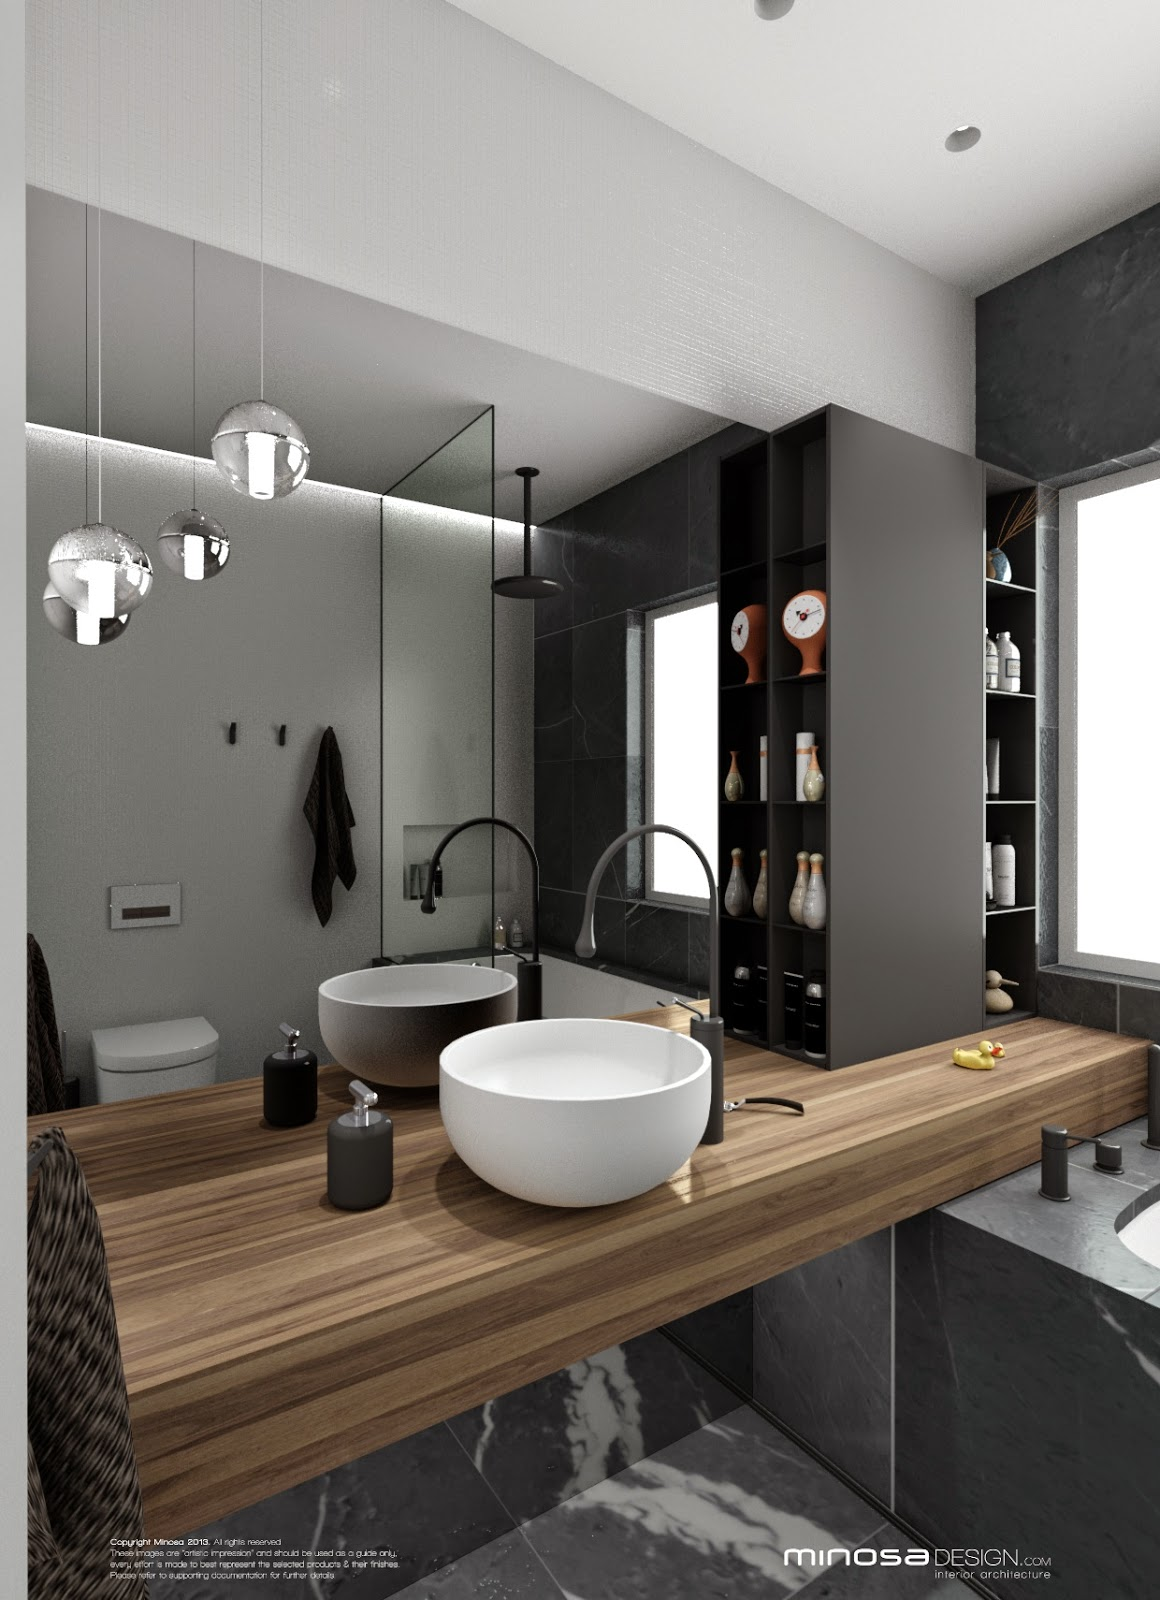 Minosa bathroom design small space feels large for Very small space bathroom design